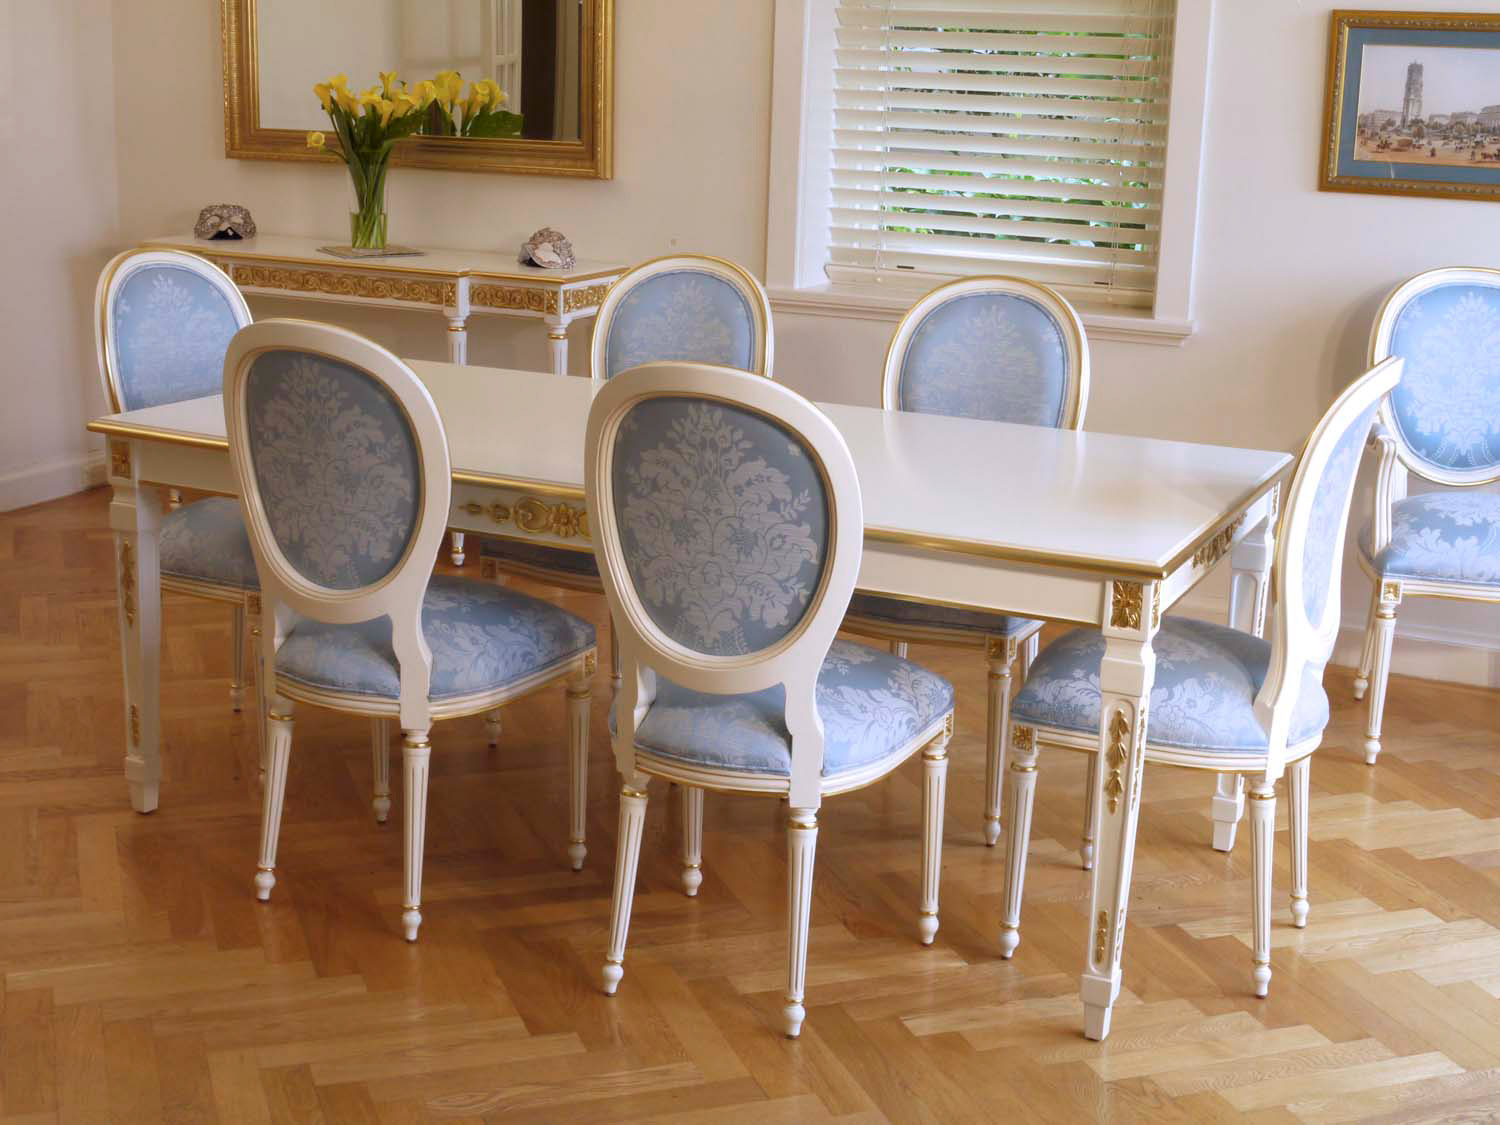 3 French dining with withe Louis XVI furniture and gilding finishes